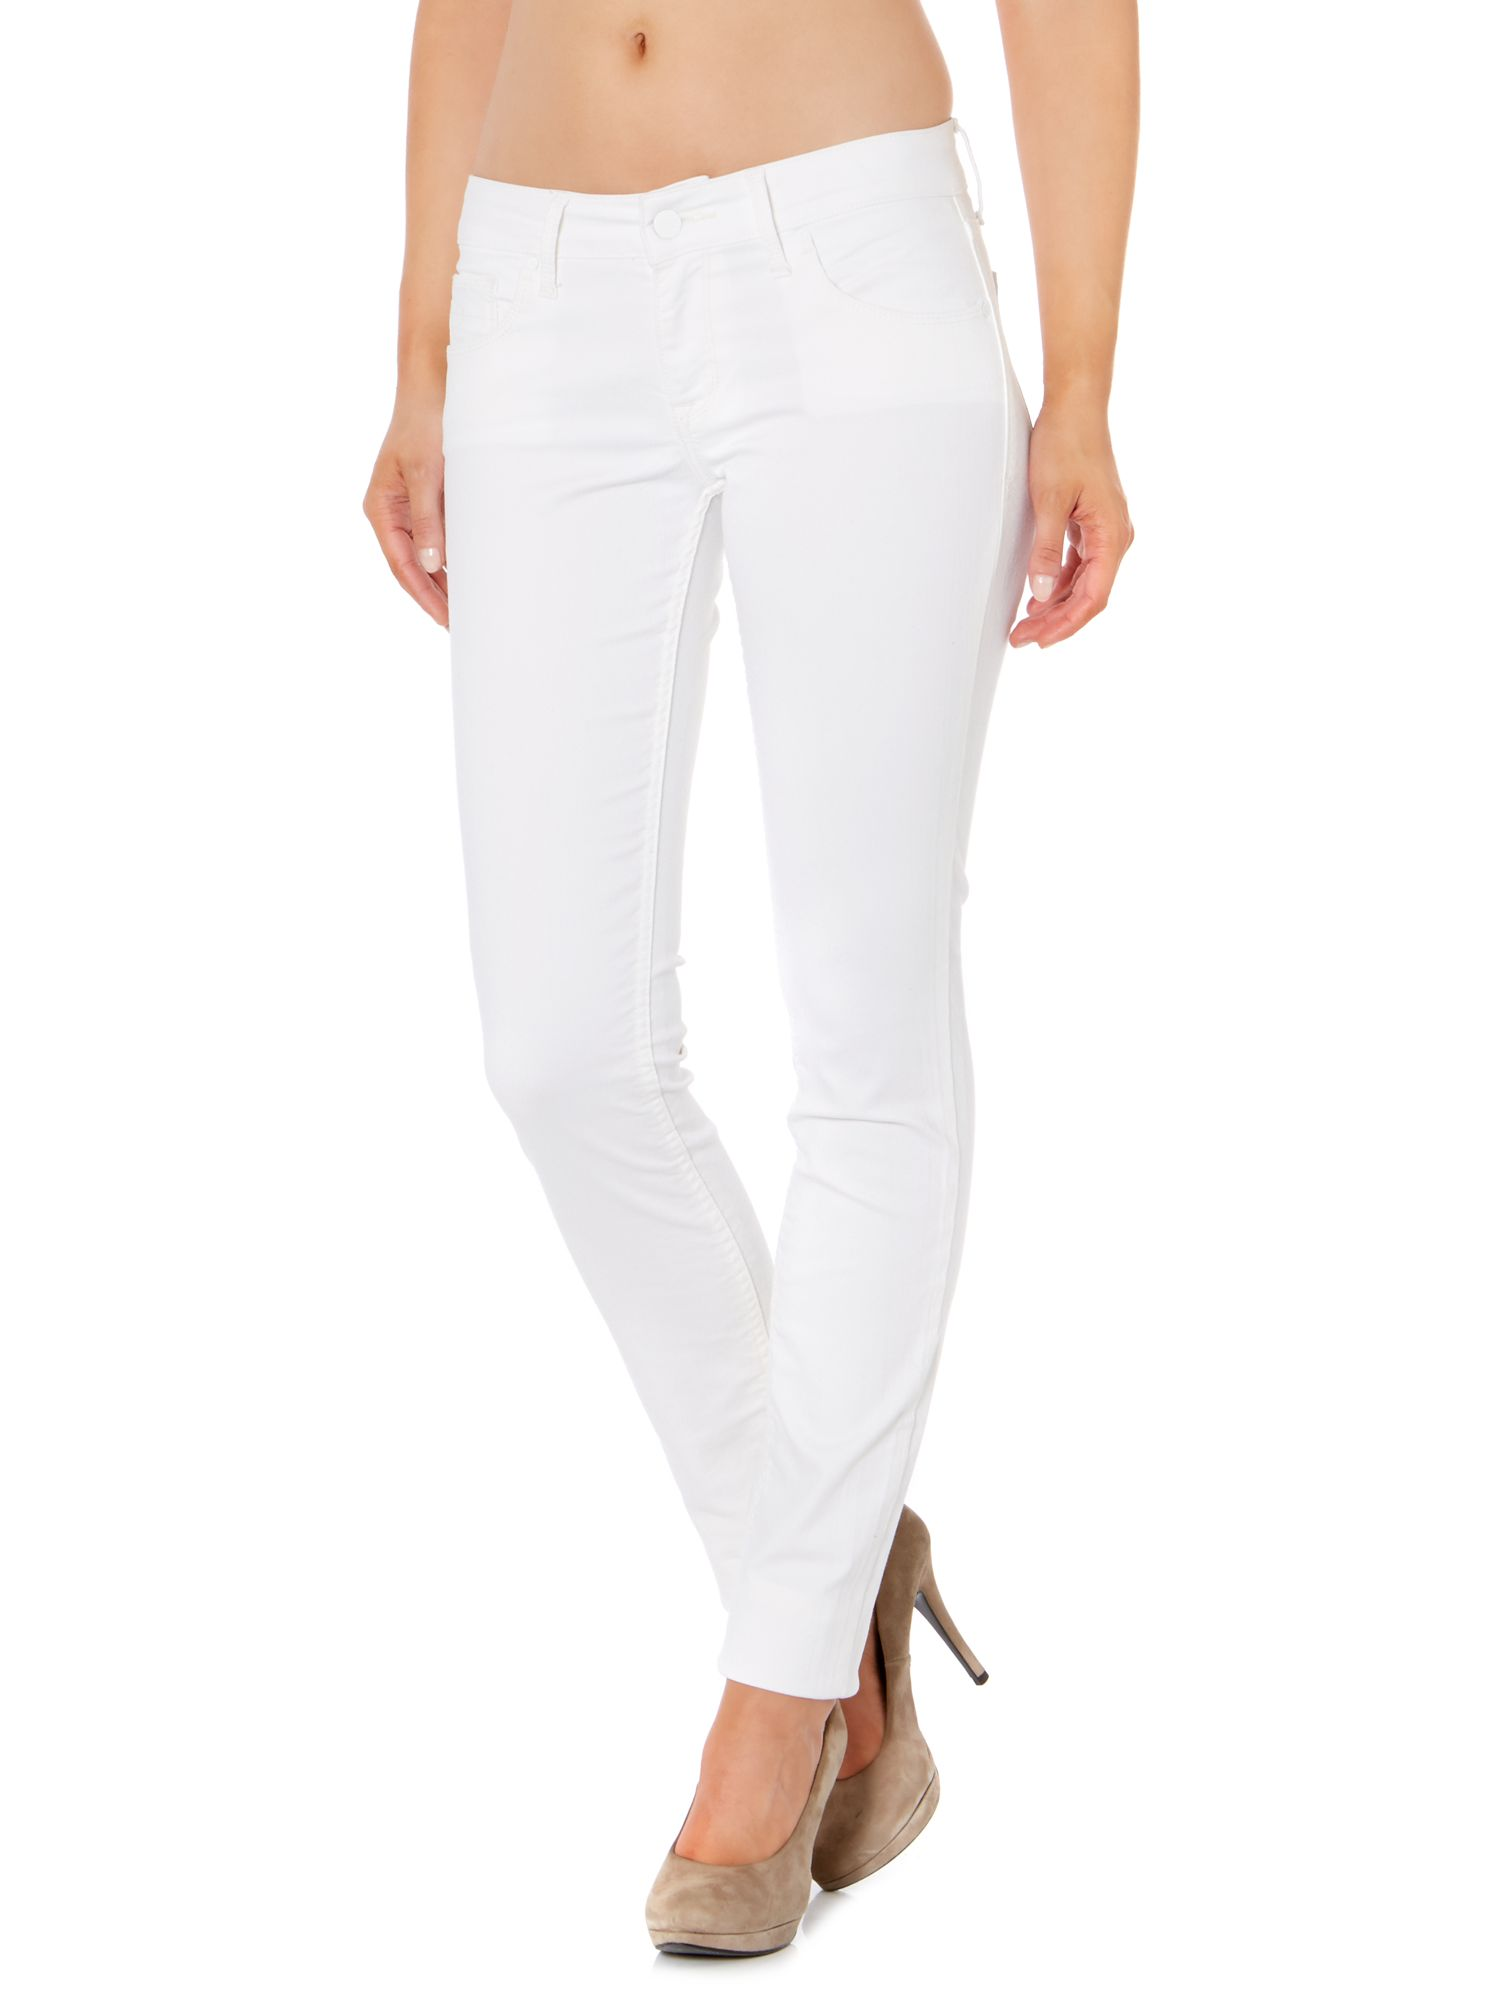 Slim mid rise pencil leg jean